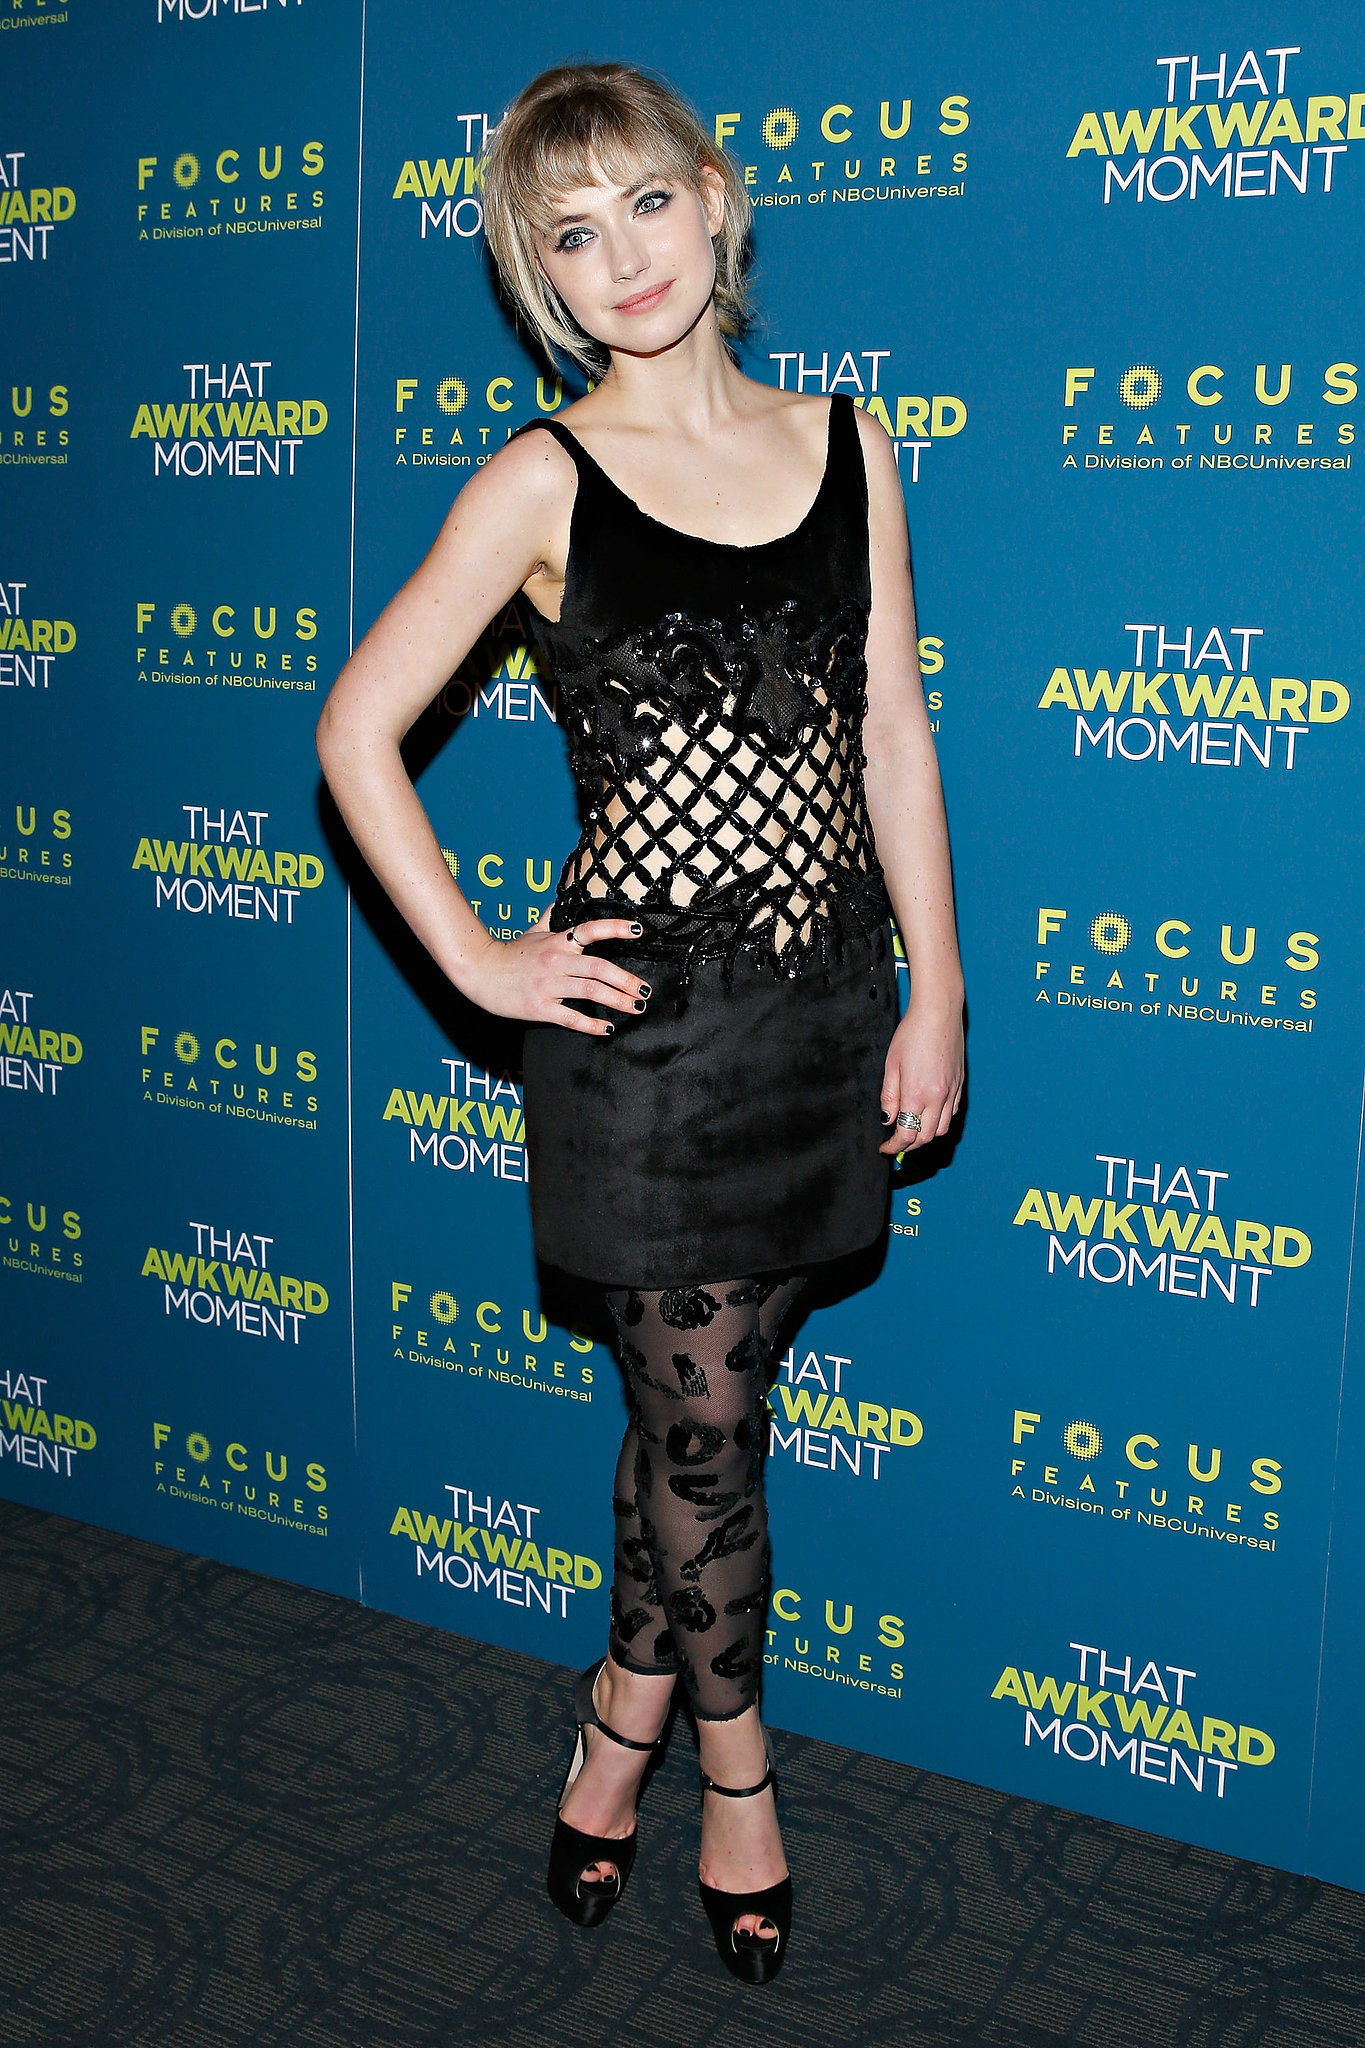 Mixing her textures with a panelled dress and embellished leggings, Imogen tried a risky look for the NYC screening of That Awkward Moment.